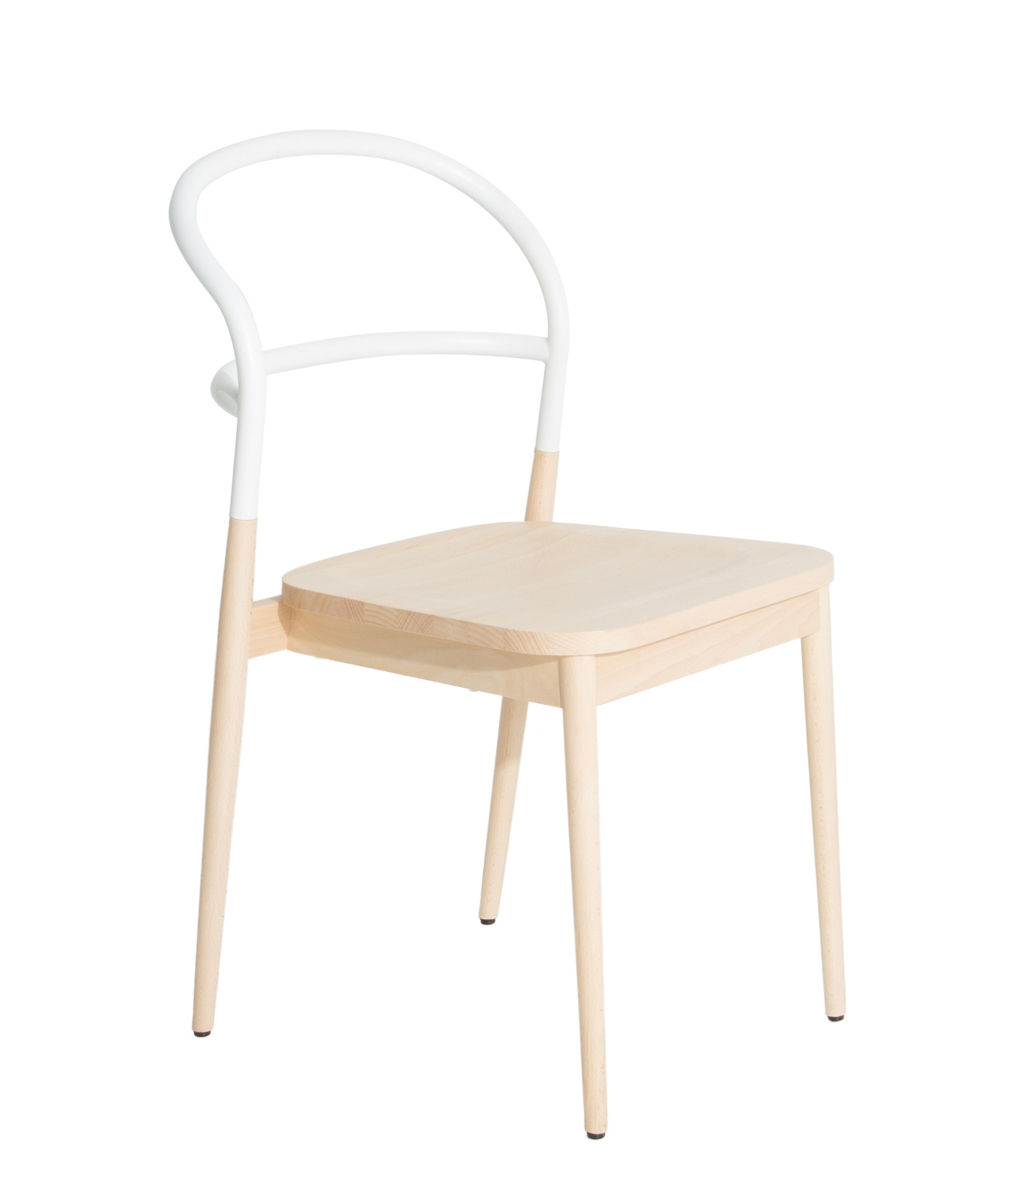 Furniture - Chairs - Dojo Chair - / Beech & steel by Petite Friture - Beechwood / White - Beechwood, Painted steel